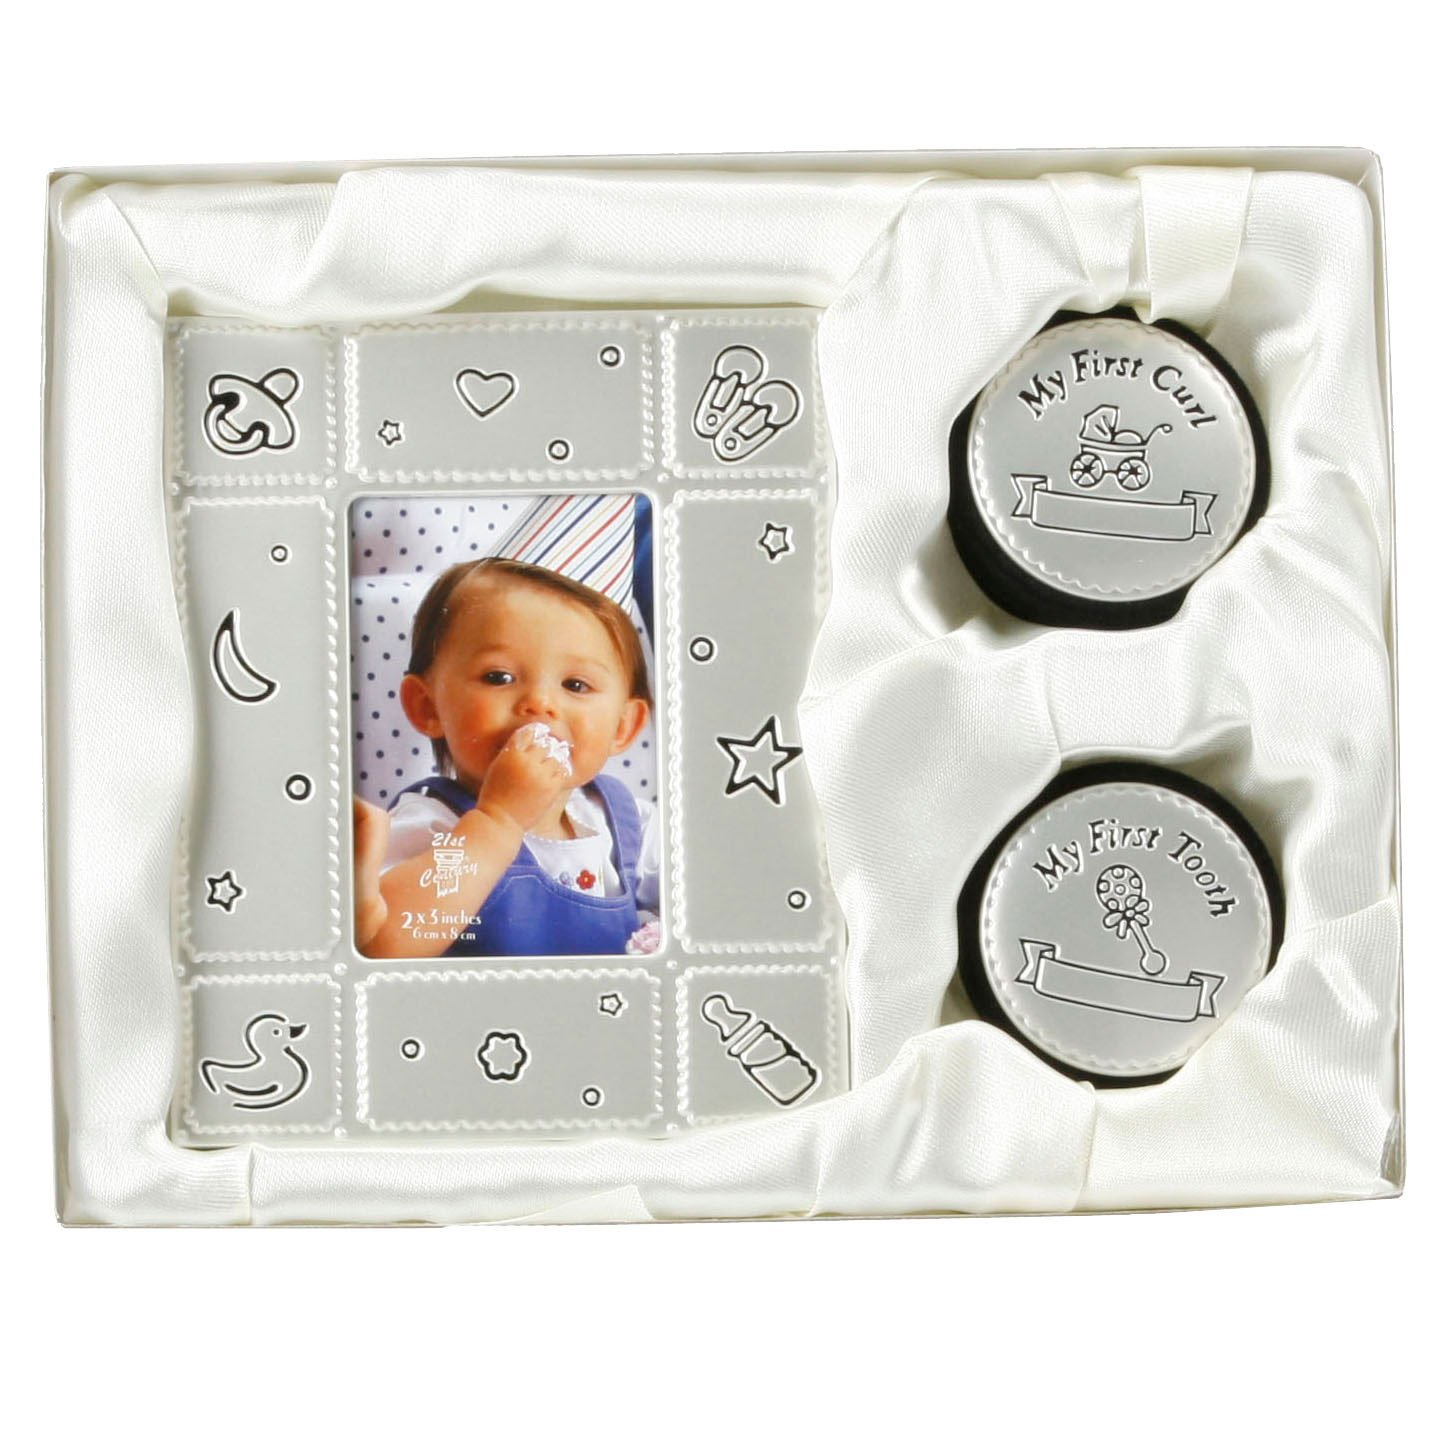 SET OF 4 BABY STORAGE BOX GIFT SHOWER CHRISTENING KEEPSAKE NEW BORN PRESENT NEW